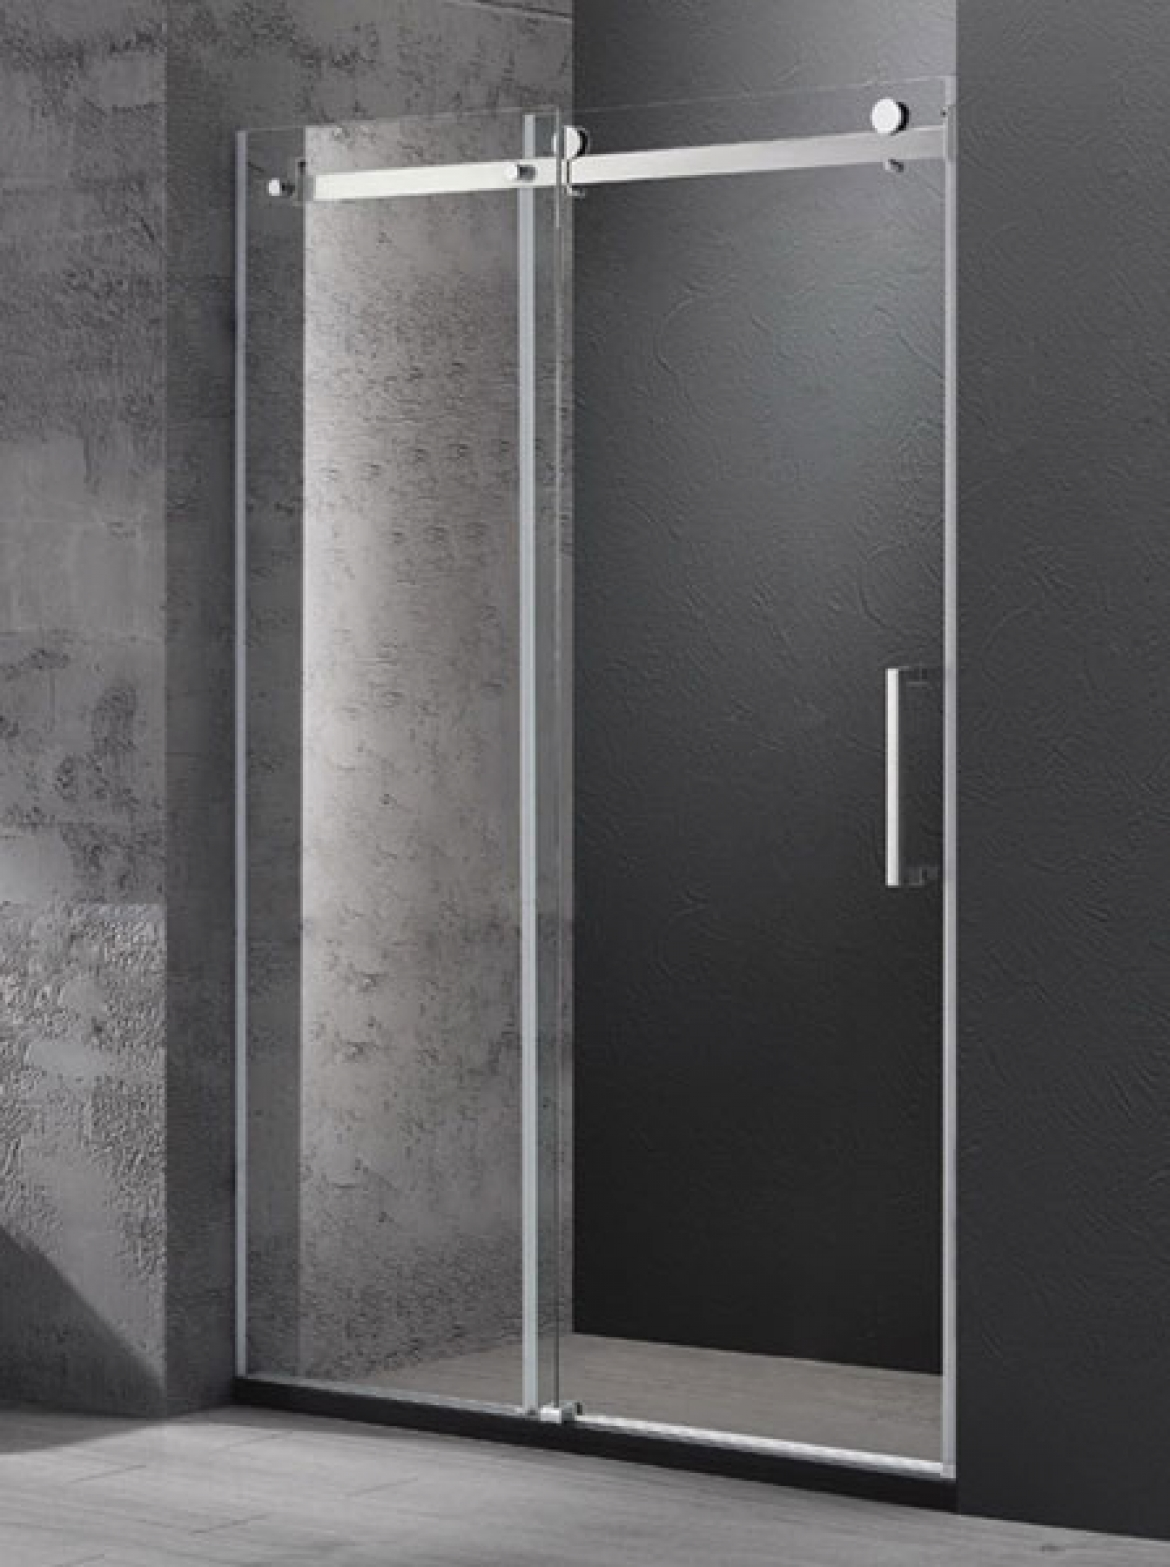 Wall to wall frameless sliding shower screen [1500 x 1950 mm]